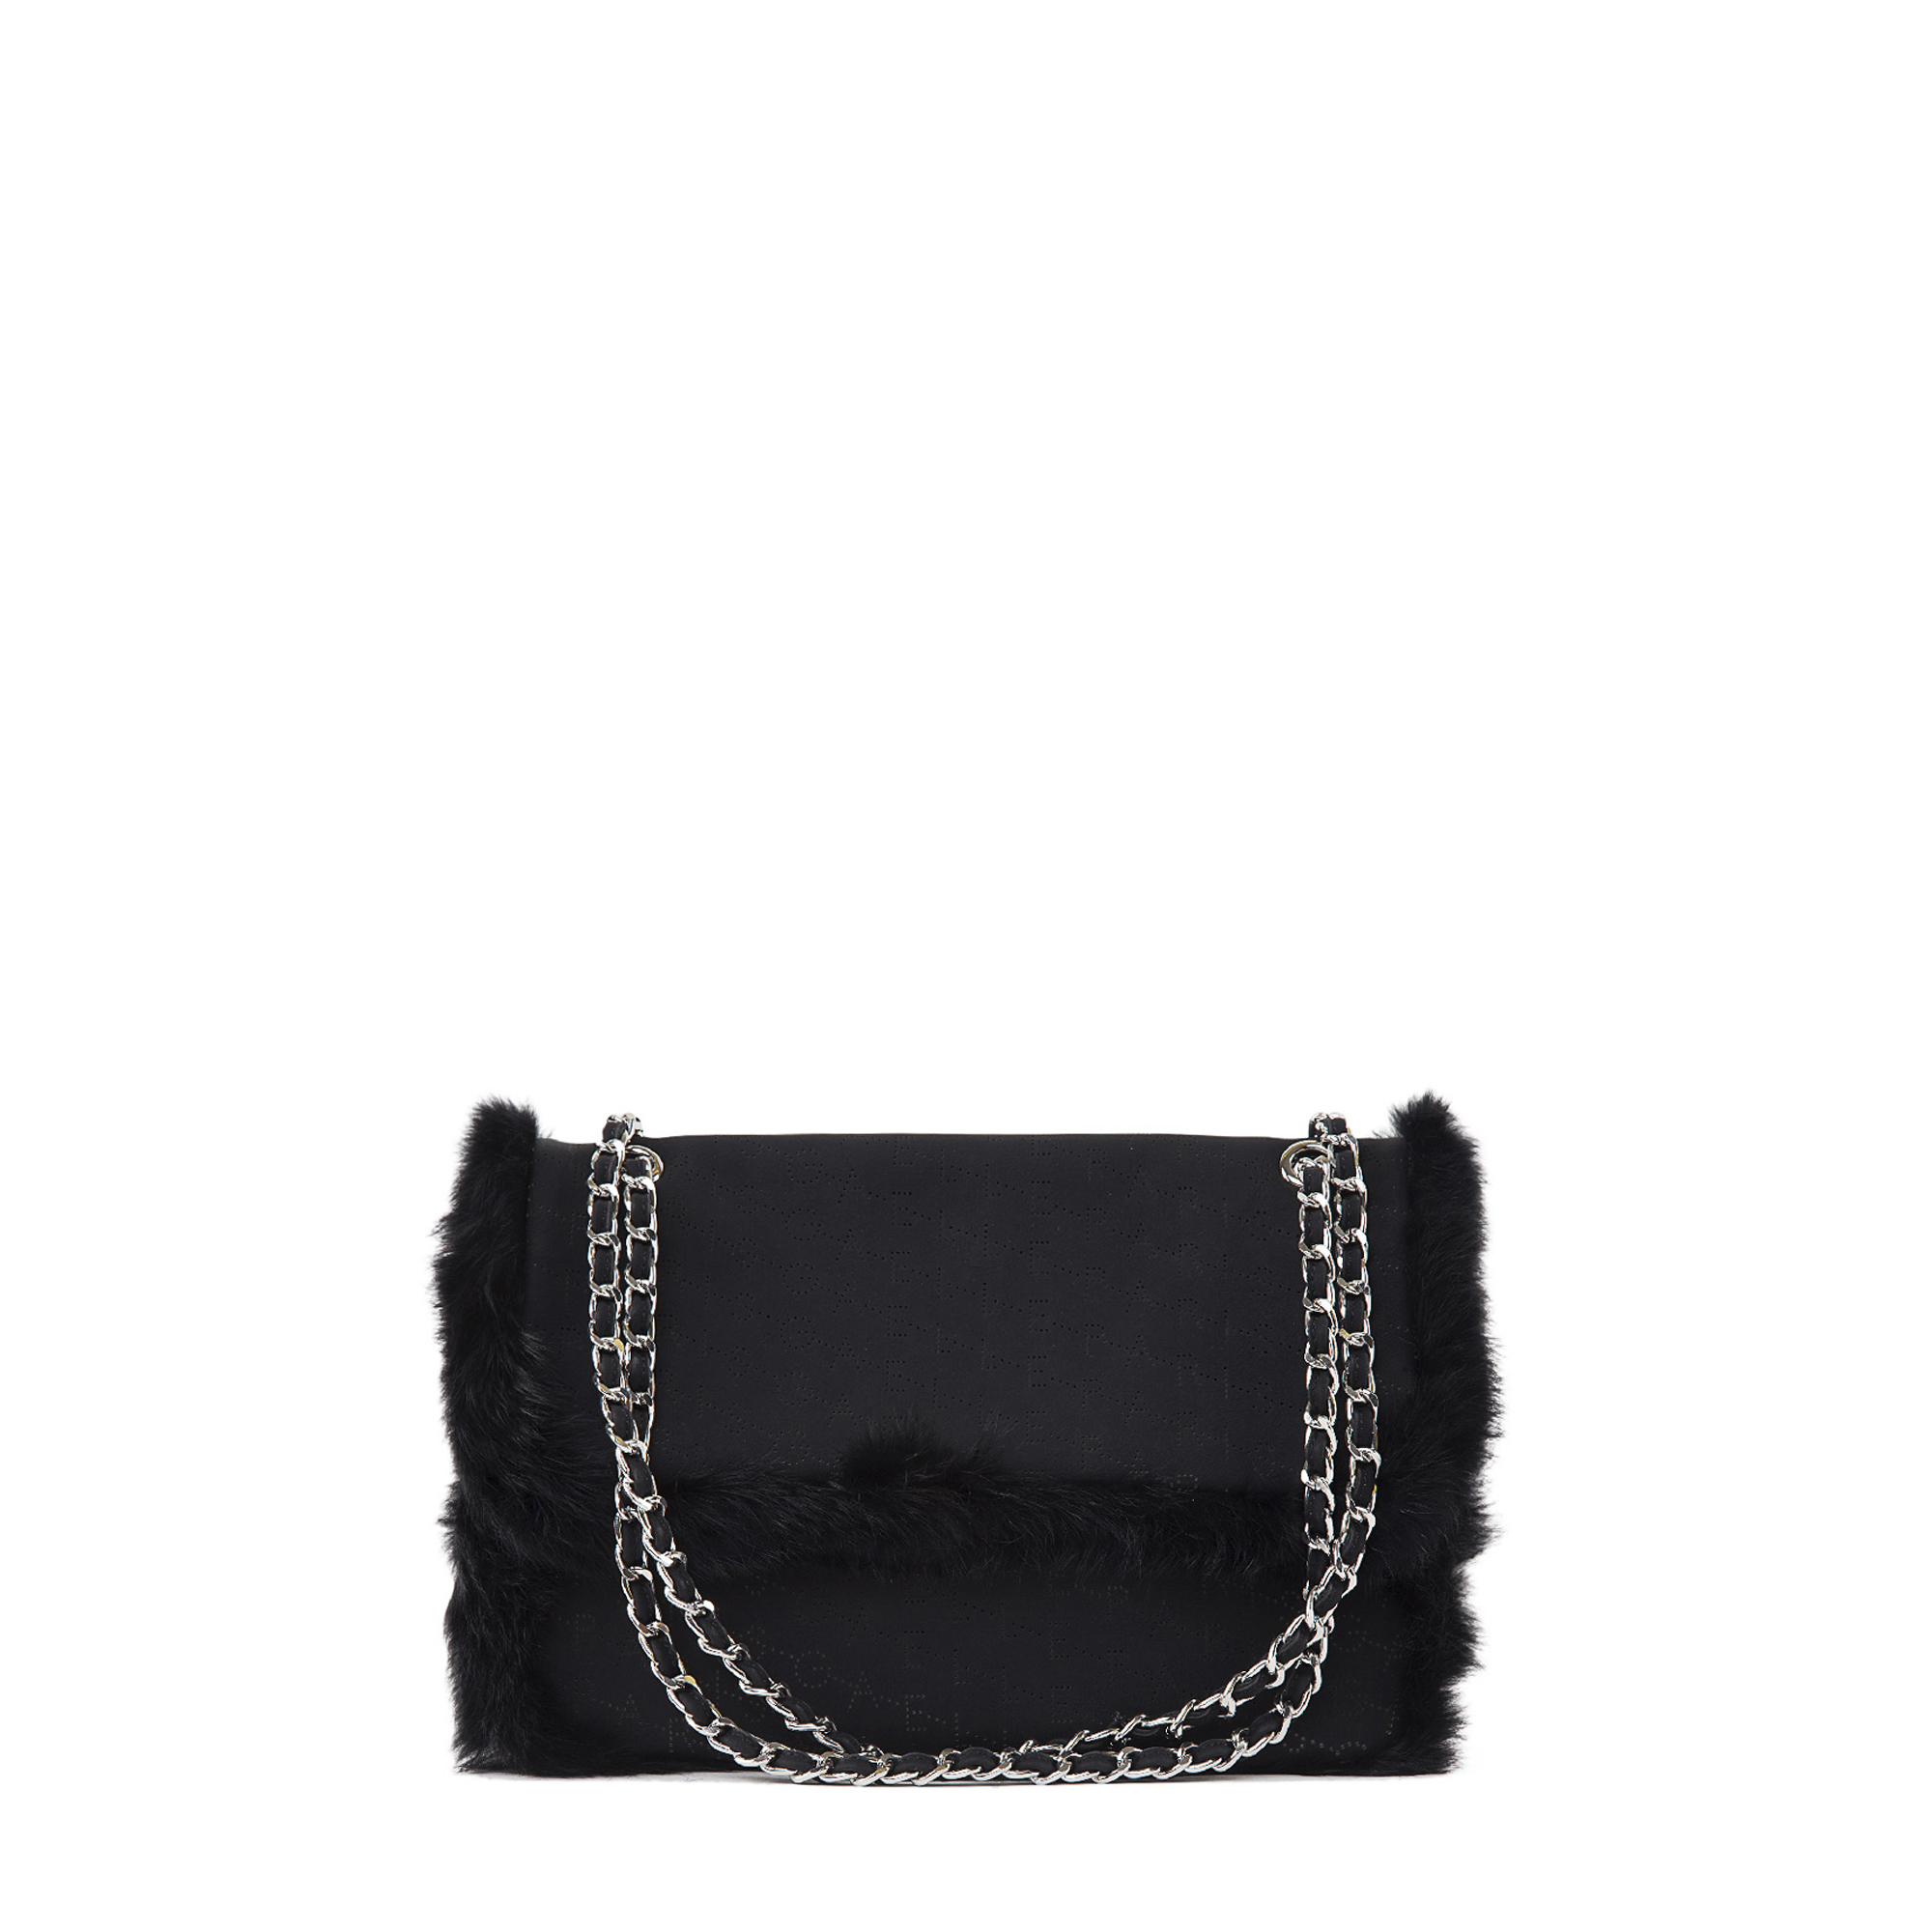 SHOULDER BAG - GBDA1082 - GAELLE PARIS